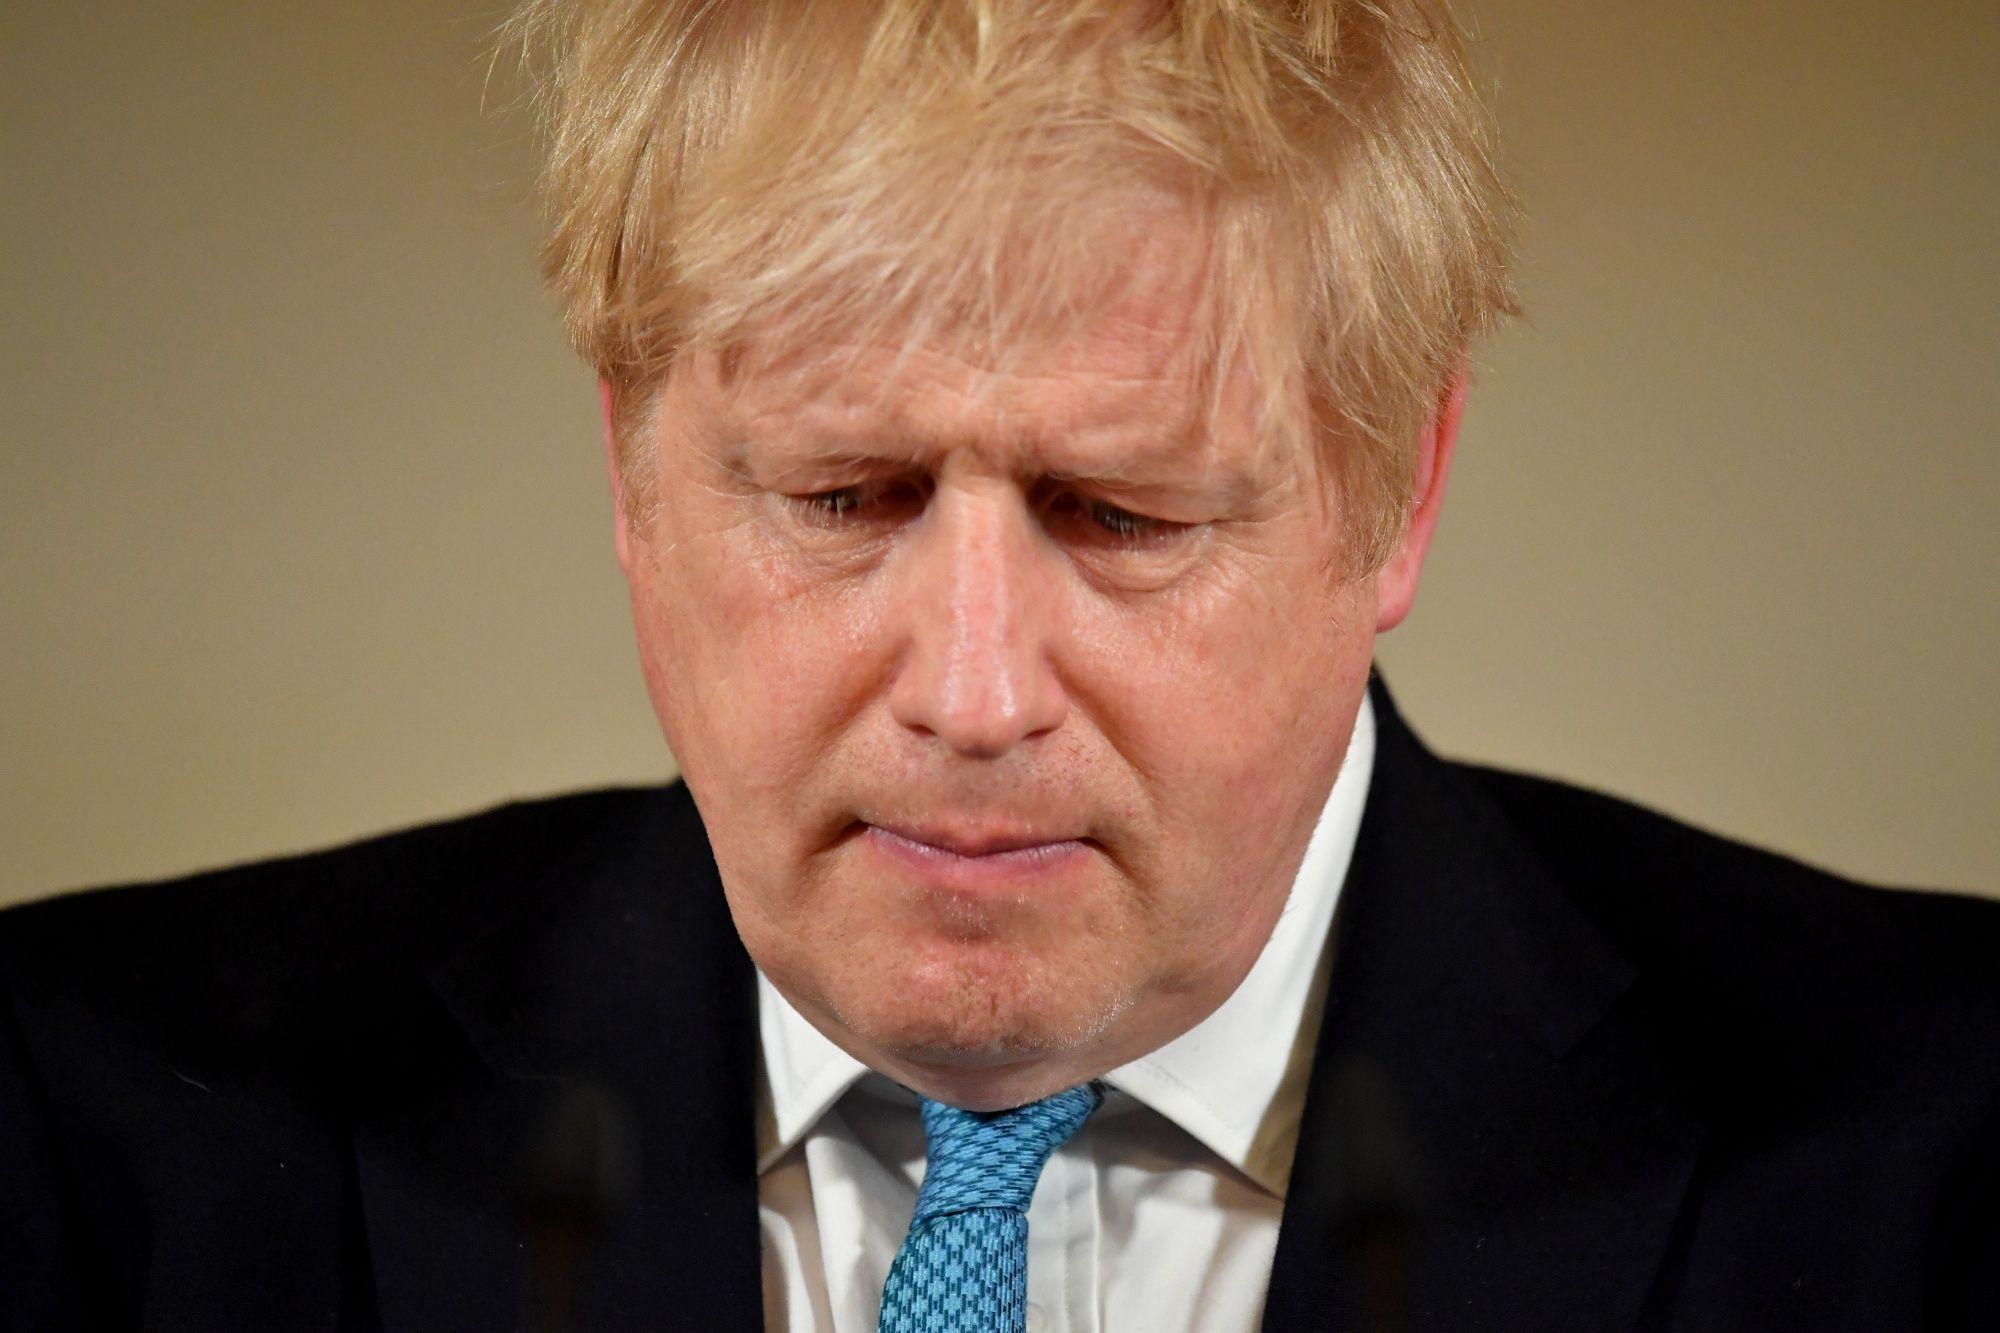 Coronavirus: Boris Johnson moved to intensive care as symptoms 'worsen'